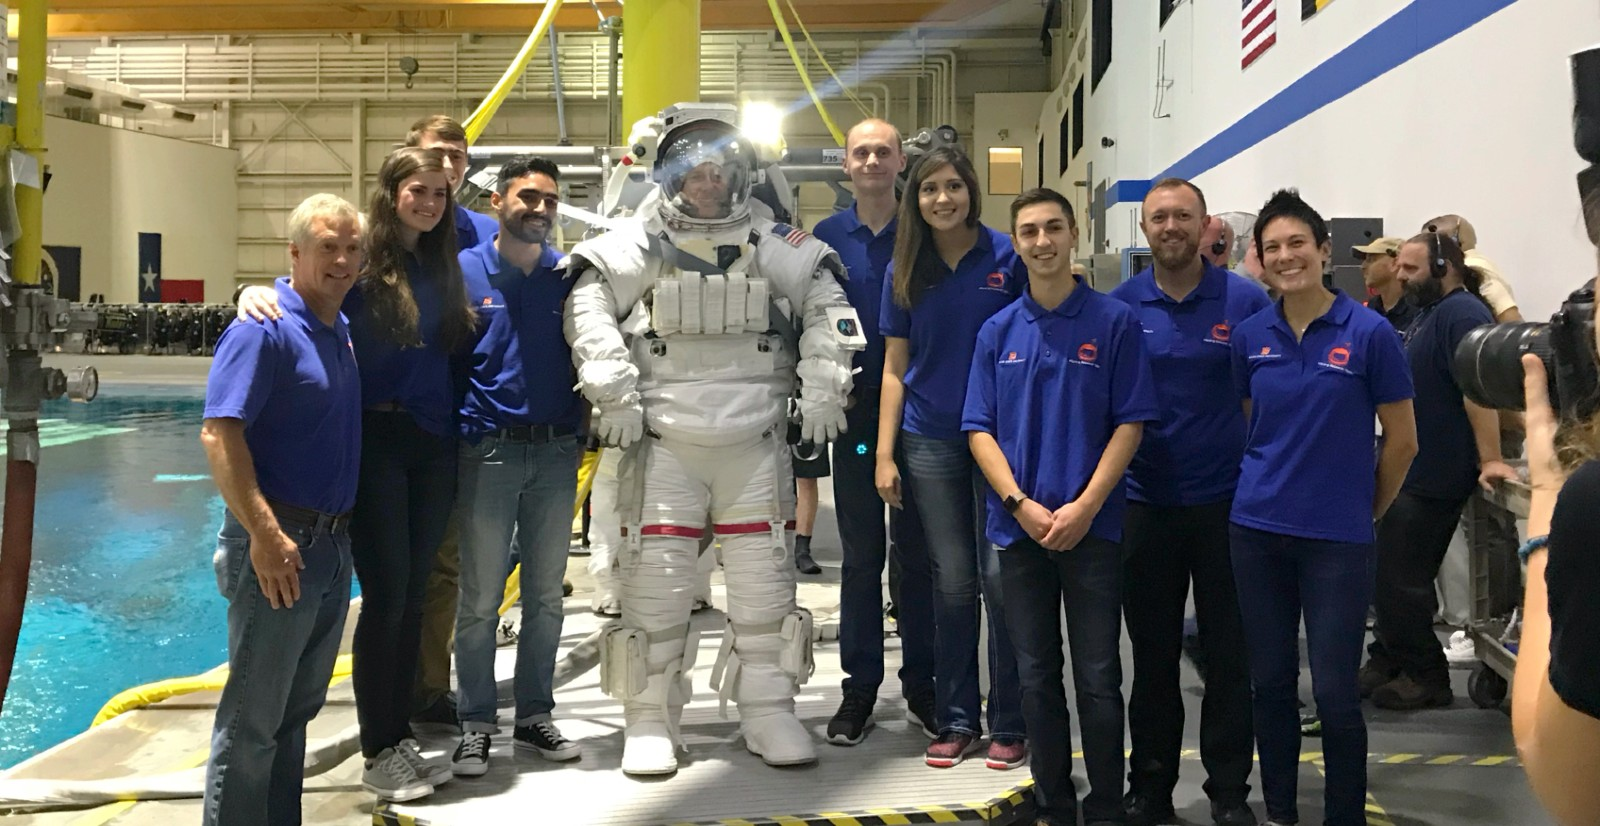 students at the NASA Johnson Space Center pose with astronaut